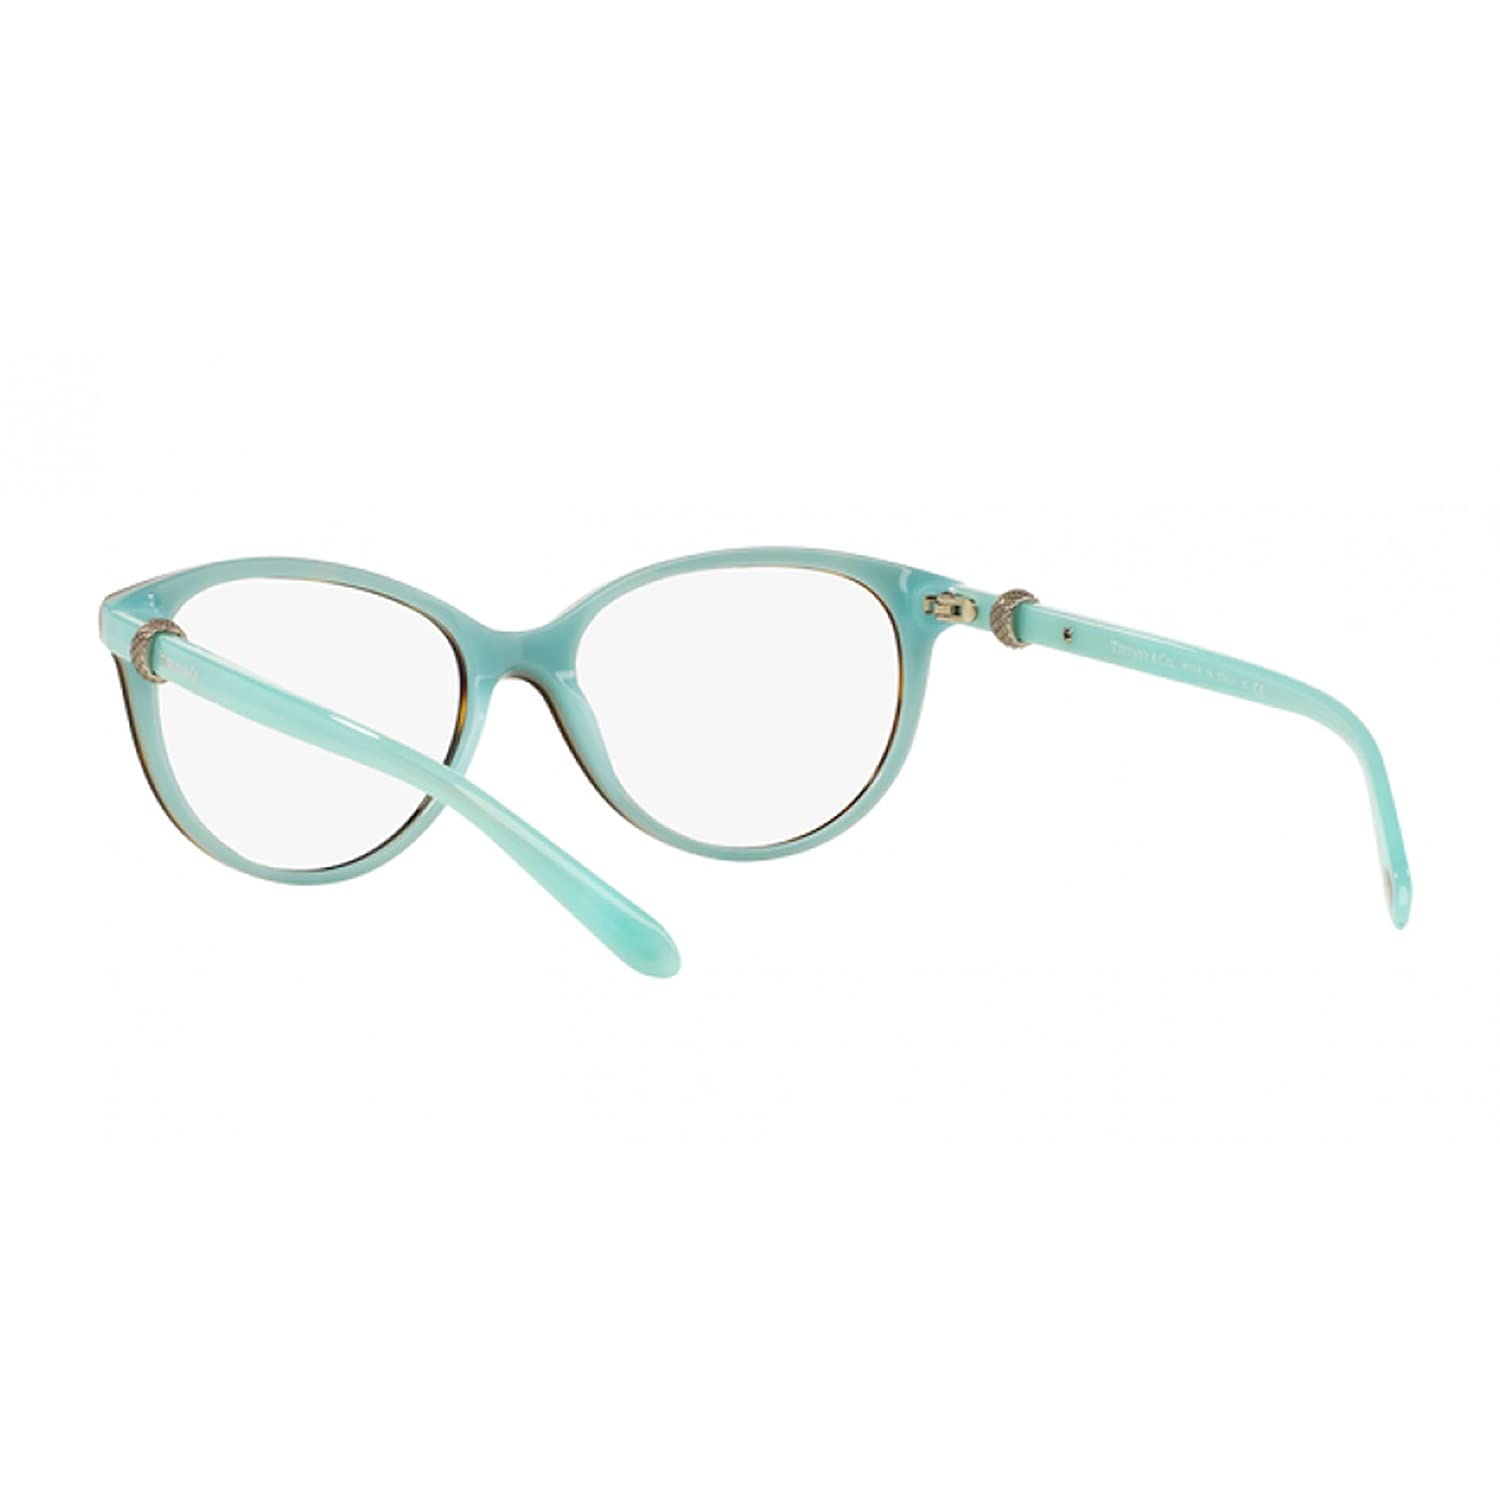 2fca45fa5f Tiffany   Co Glasses TF2113 8134 54  Amazon.co.uk  Clothing